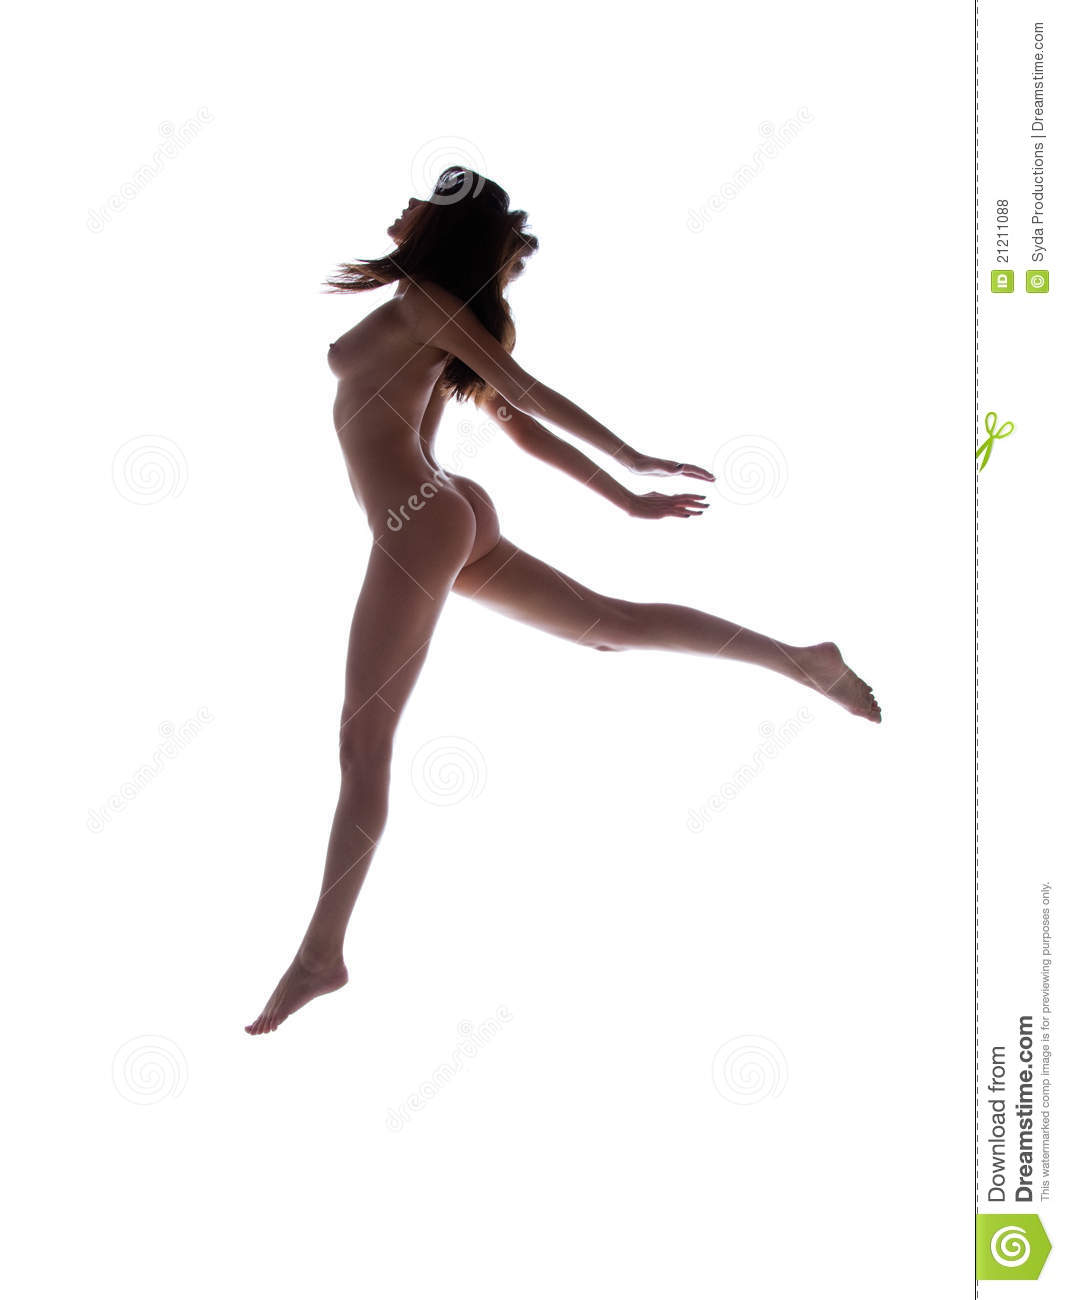 Naked Woman Picture Free 92